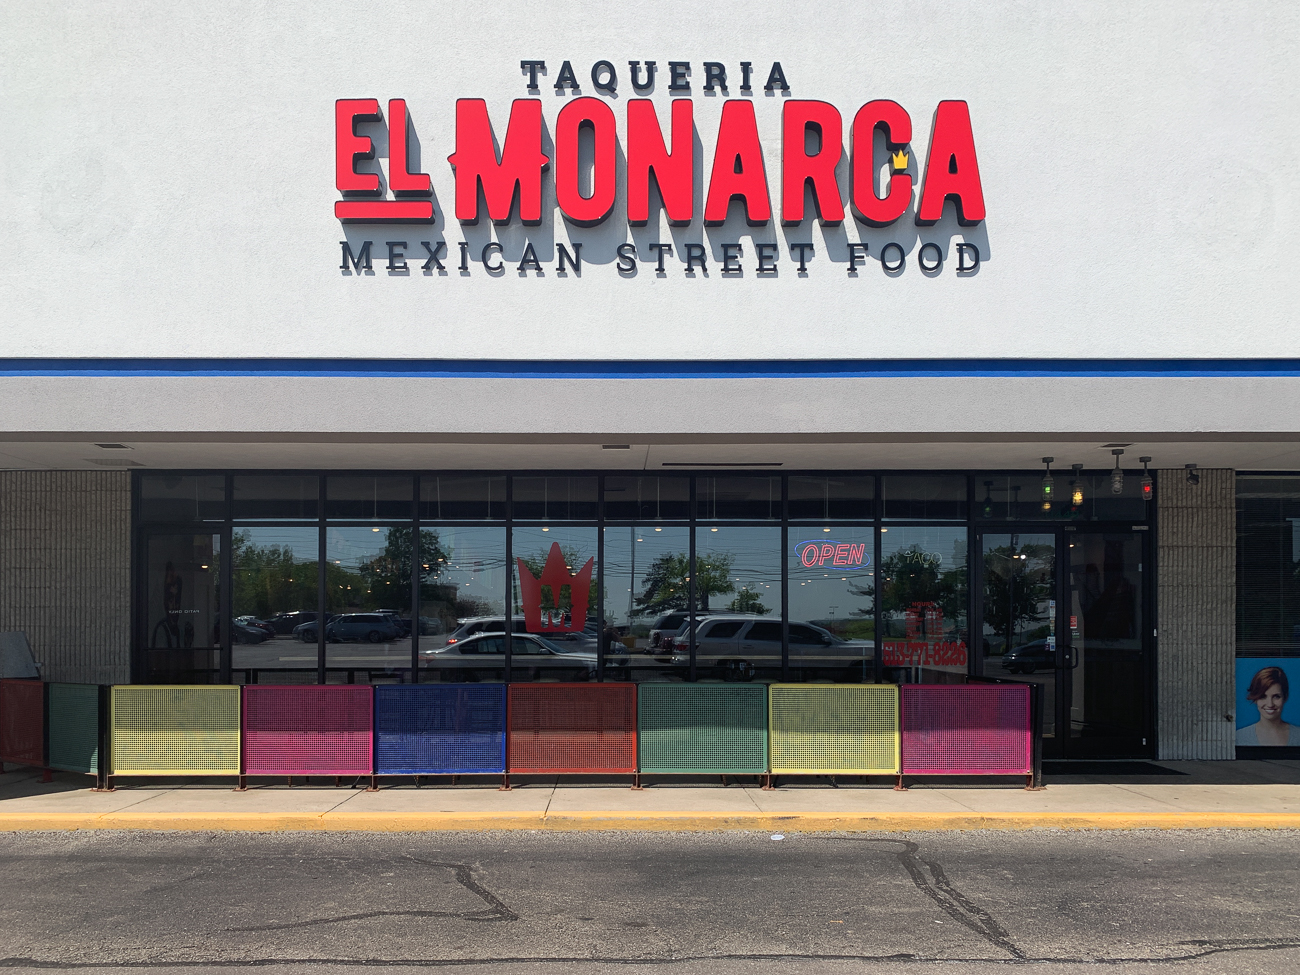 <p>PLACE: Taqueria El Monarca / ADDRESS: 11449 Princeton Pike (Springdale) / DESCRIPTION: This is the most seemingly commercial spot on the list. It's mere blocks away from Tri-County Mall, and it's set up like Chipotle, with the fast-casual vibe and the counter service. Don't let all that fool you though; these tacos are as authentic as any other place on this list. I got the carnitas tacos and the beef tacos. If you're up in the northern part of Greater Cincinnati, and you need your fix, this is the place to go. / Image: Shawn Braley // Published: 5.28.19</p>